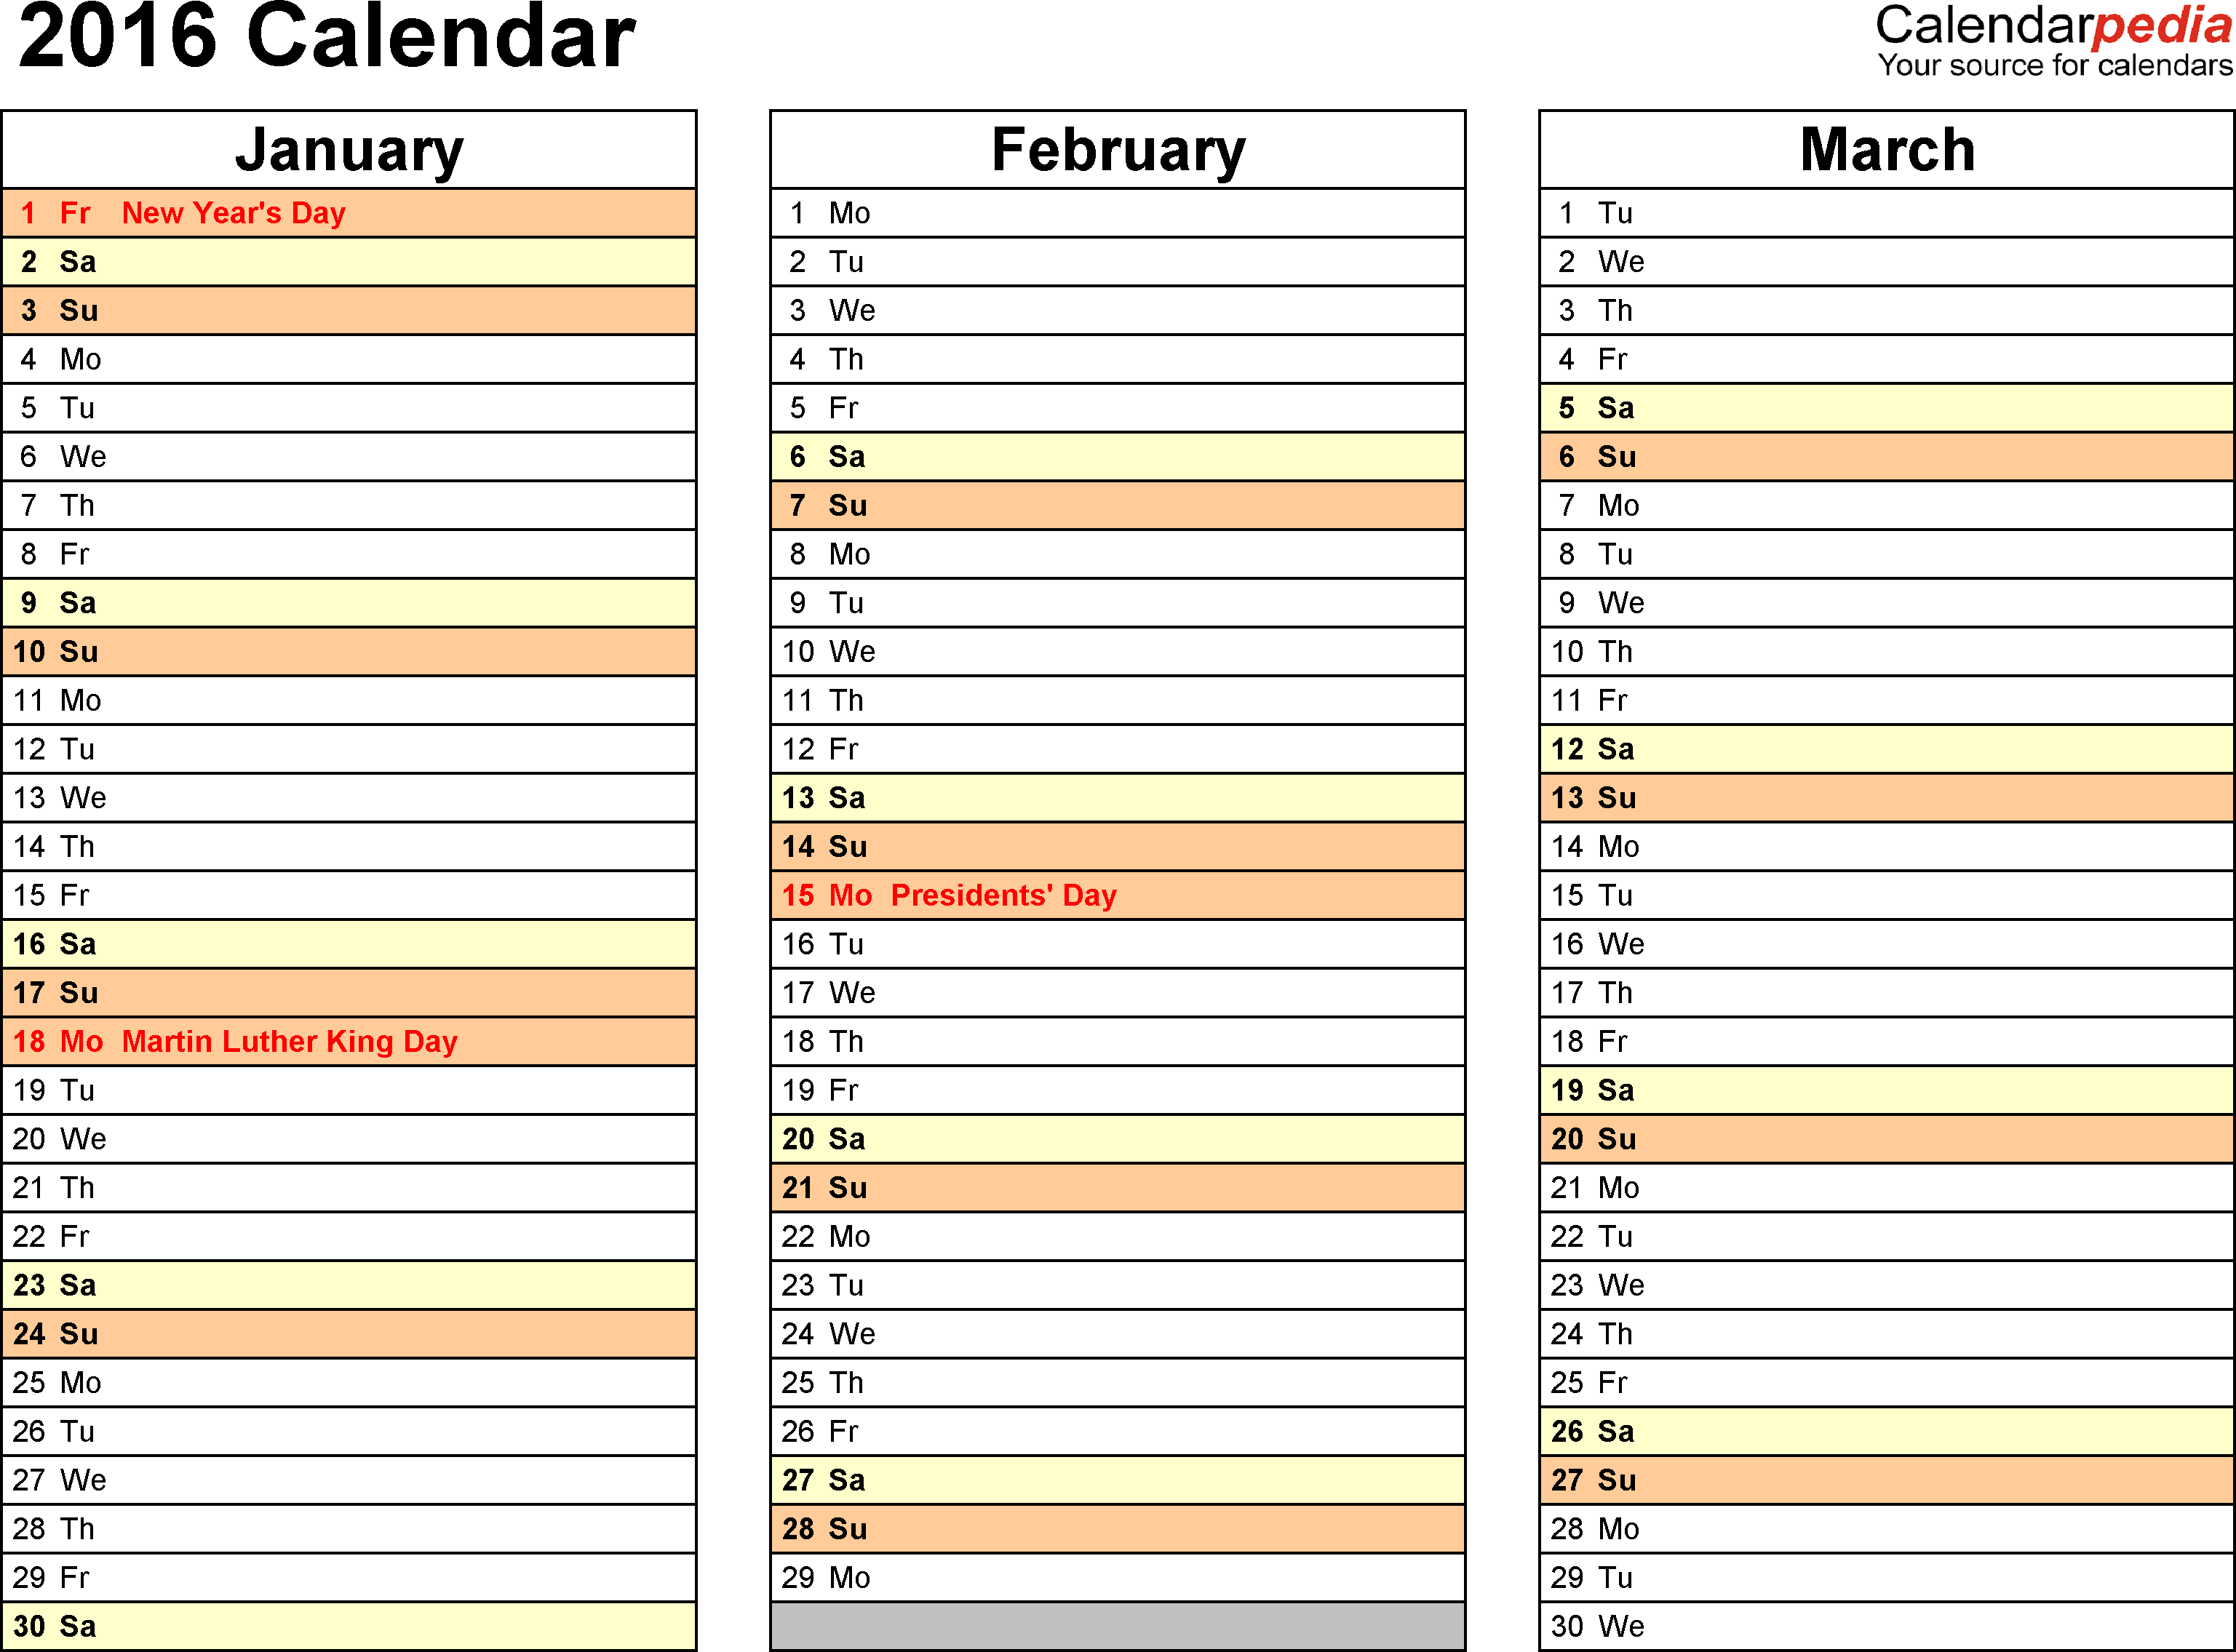 Template 6: 2016 Calendar for Excel, months horizontally, 4 pages, landscape orientation